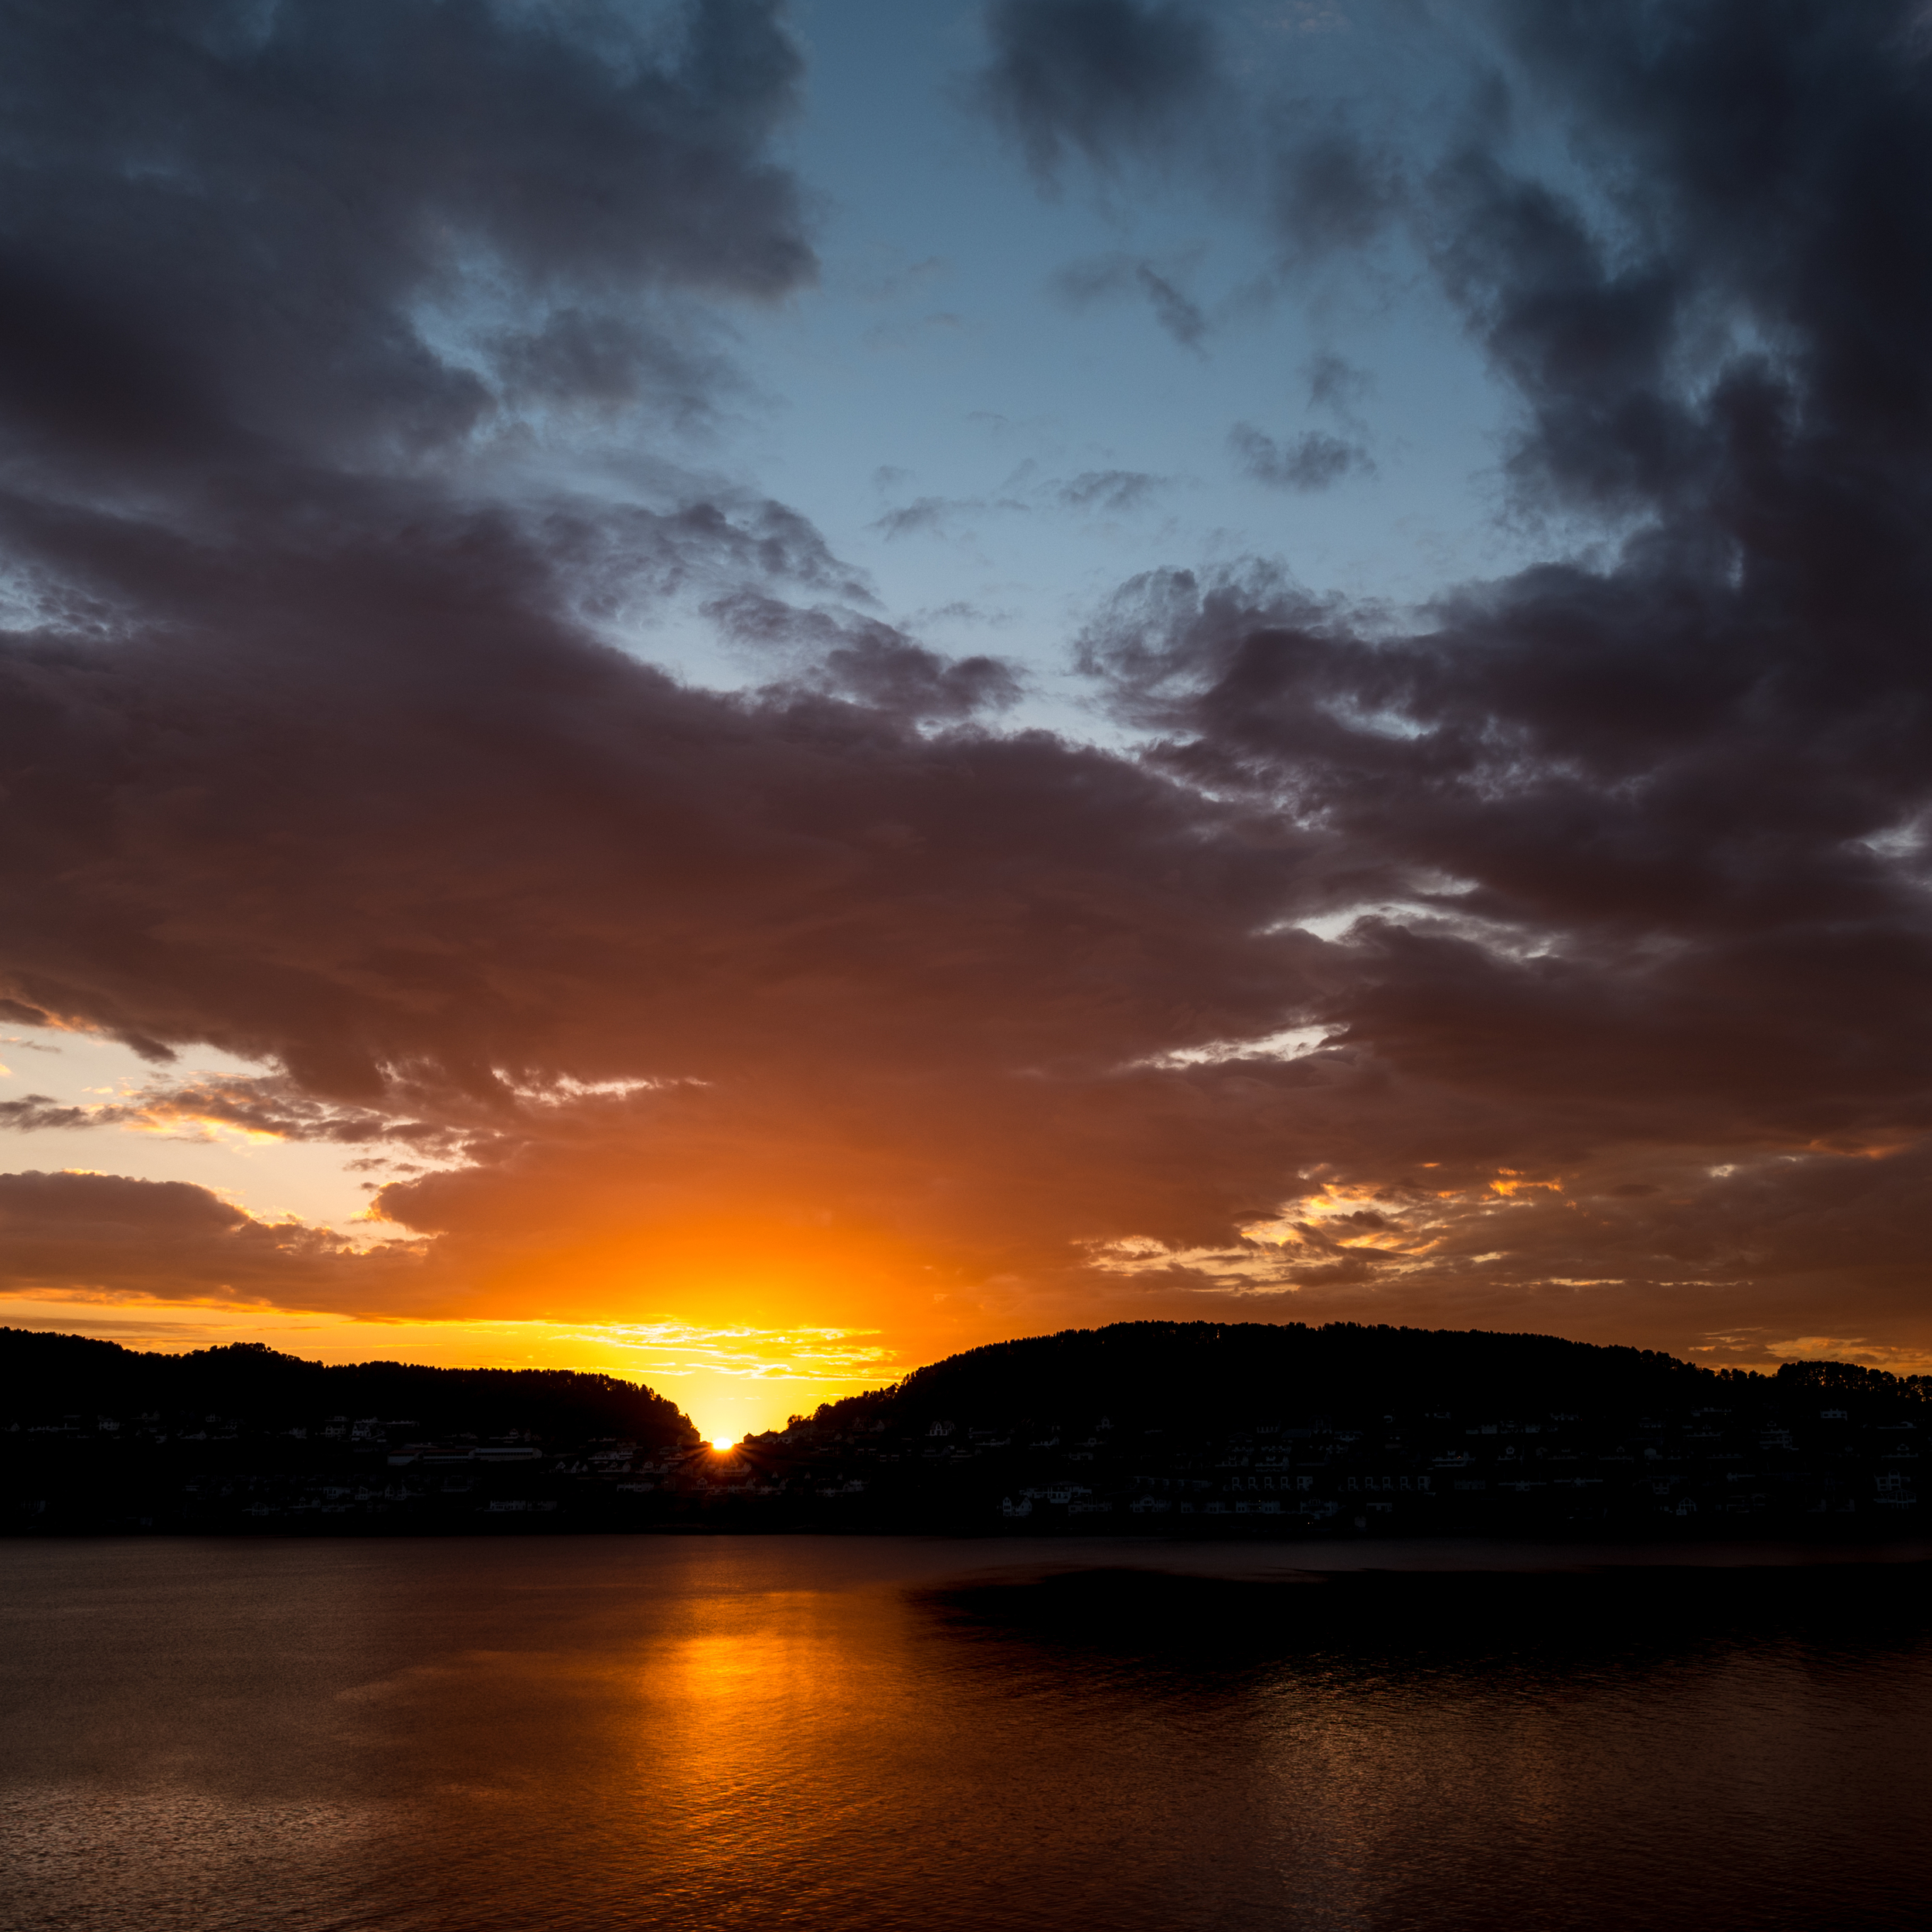 Midnight sun over Norway